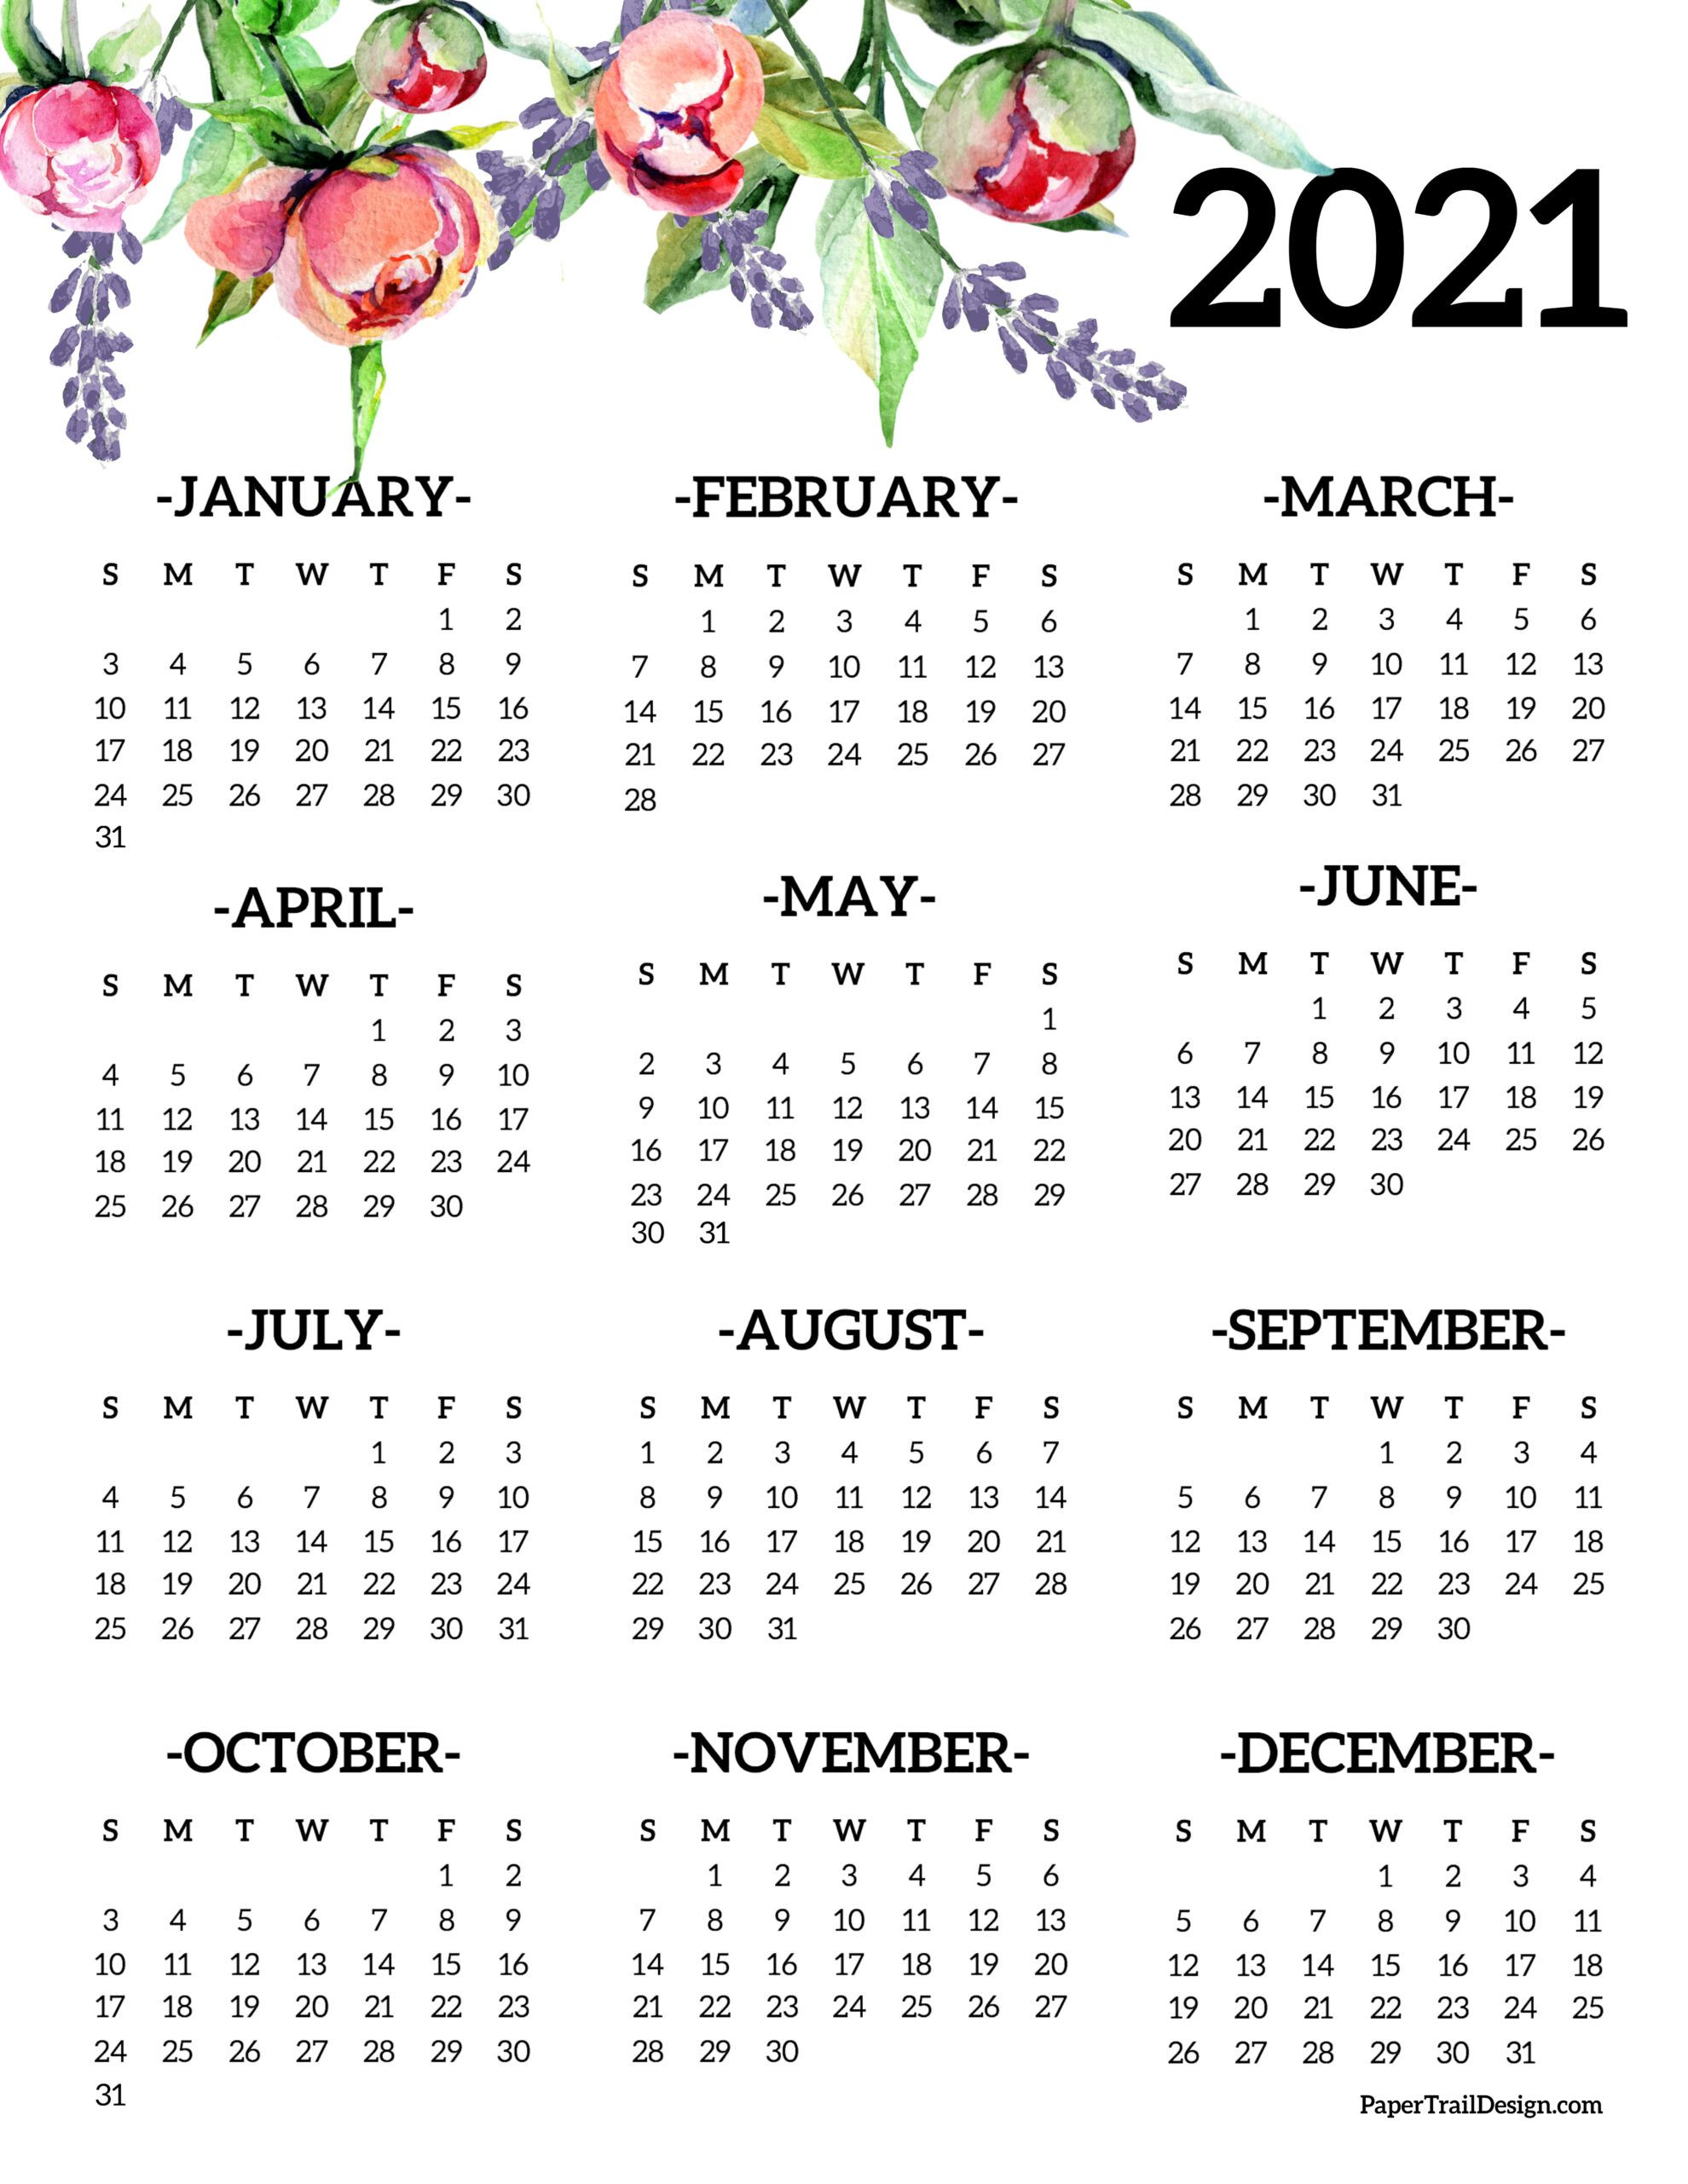 free printable 2021 one page floral calendar paper trail design in 2020 printable yearly calendar calendar printables print calendar free printable 2021 one page floral